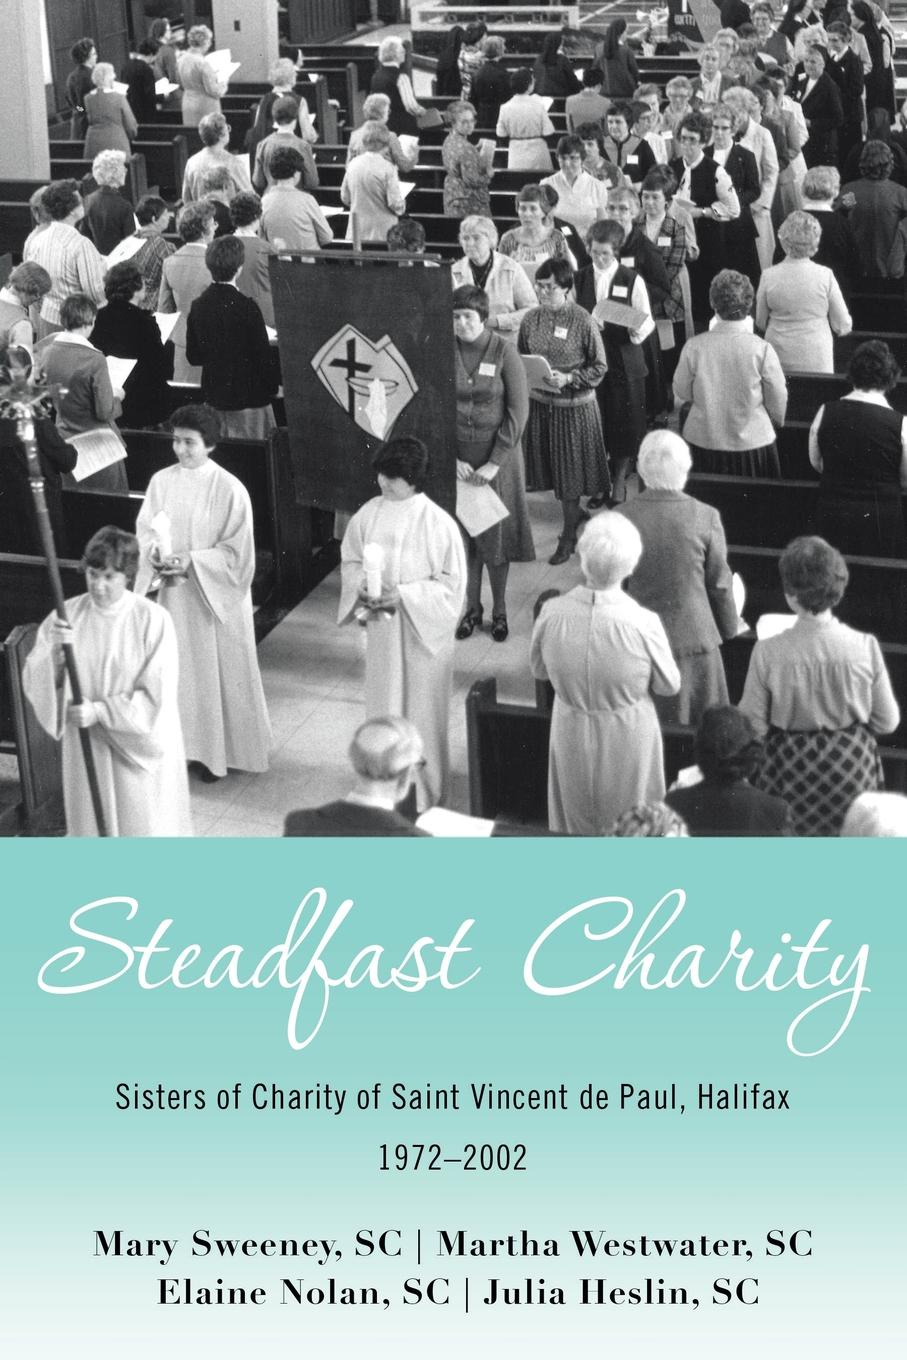 Mary Sweeney SC, Martha Westwater SC, Elaine Nolan SC Steadfast Charity. Sisters of Charity of Saint Vincent De Paul, Halifax 1972-2002 foundations of charity